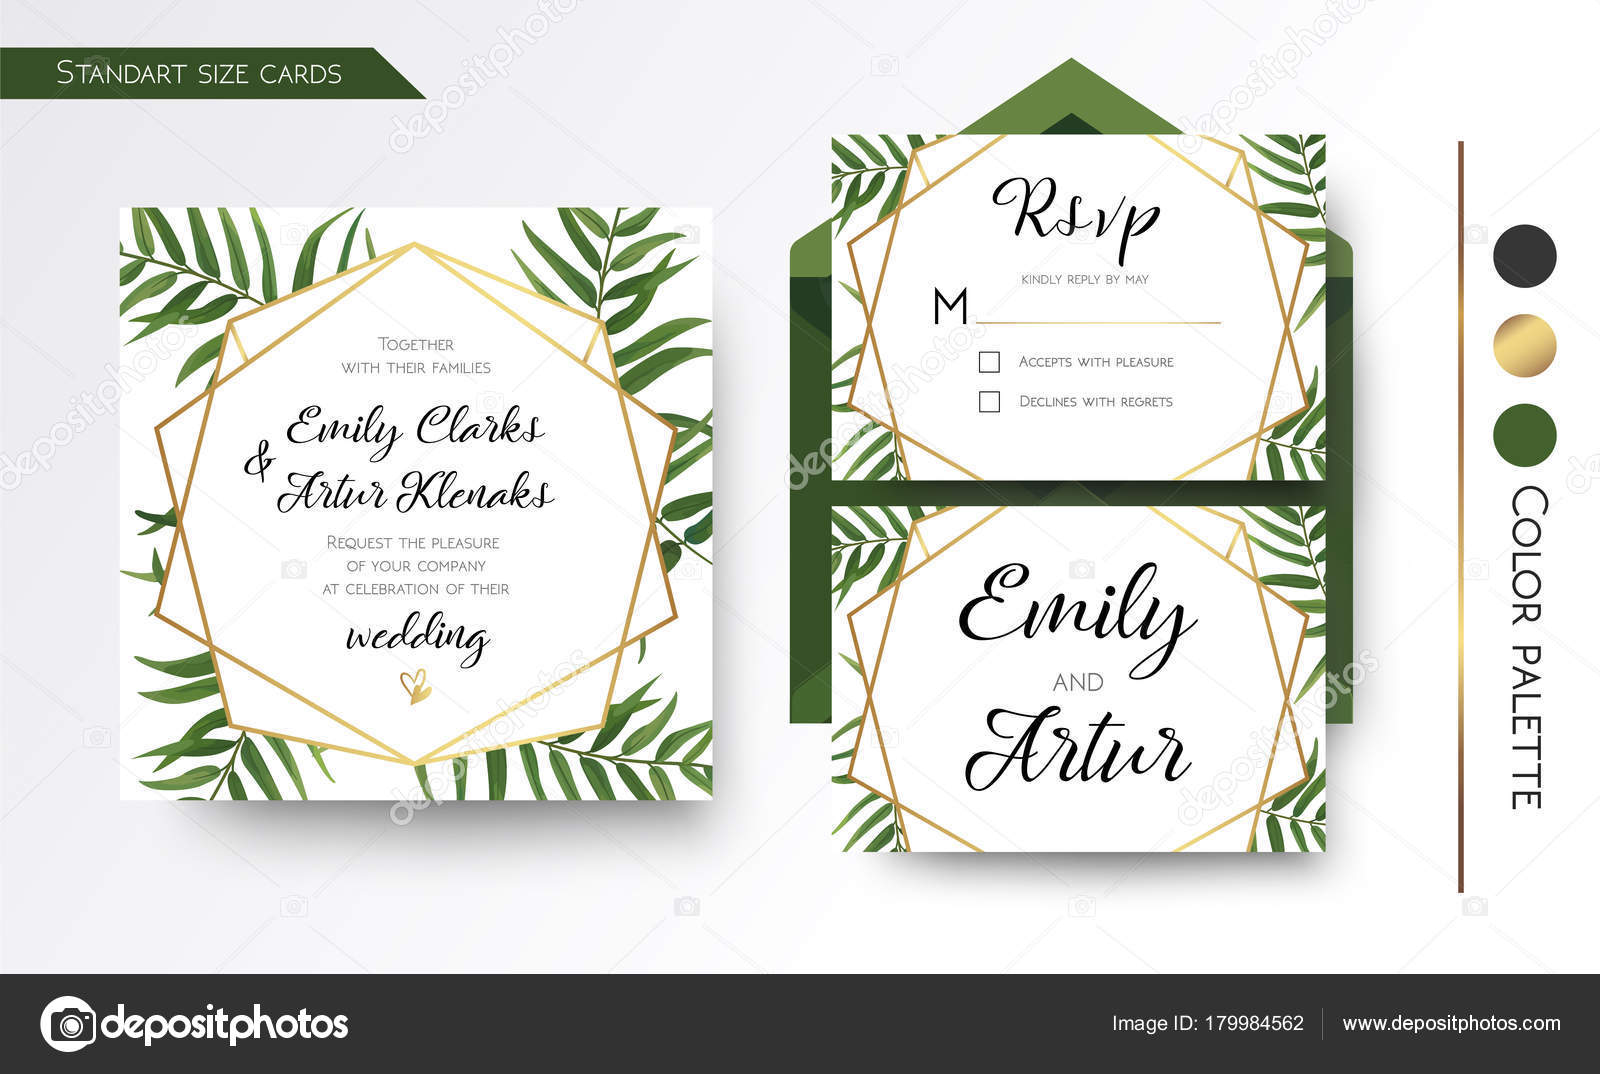 Wedding Invitation save the date rsvp invite card Design with